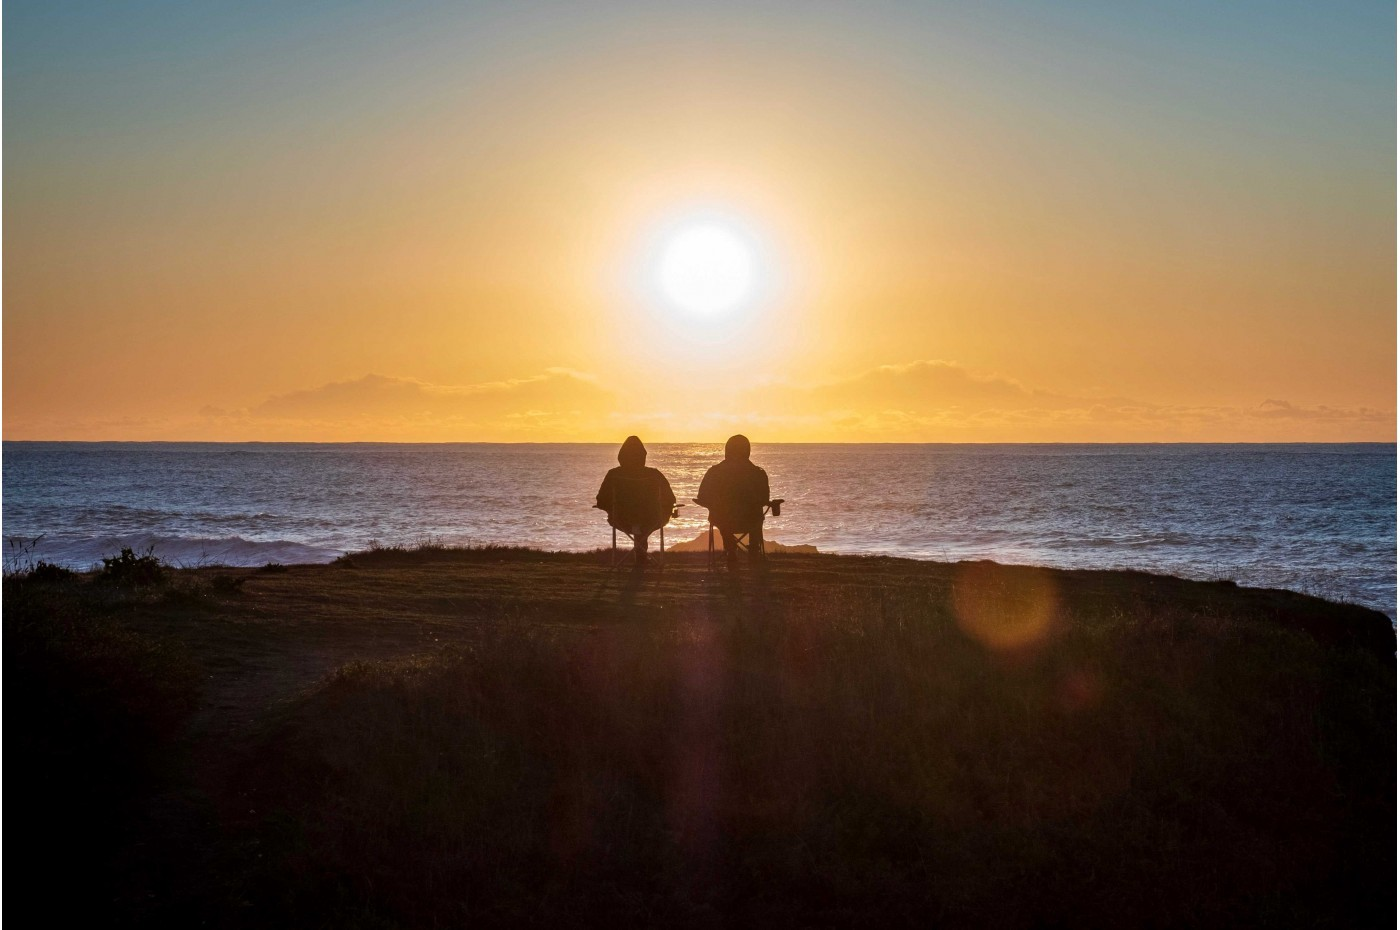 A couple sitting at the oceanfront, watching the sun setting over the water.